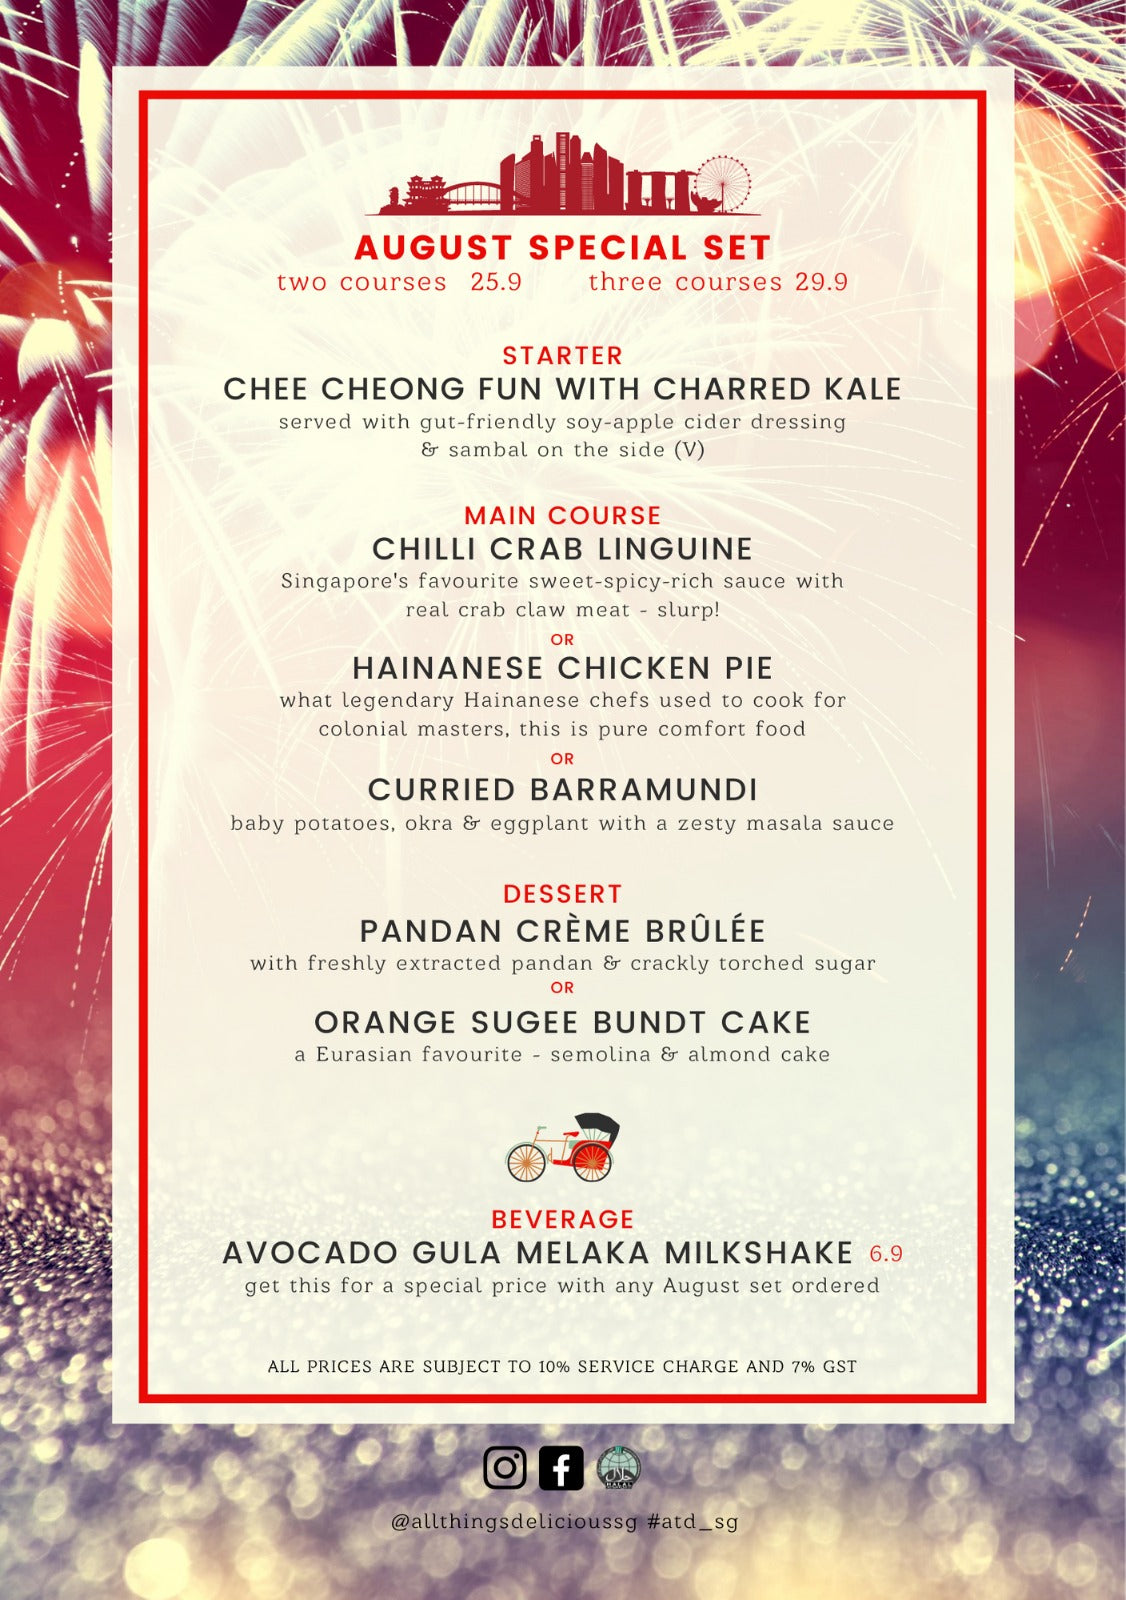 Try these delicious menu specials during the whole month of August